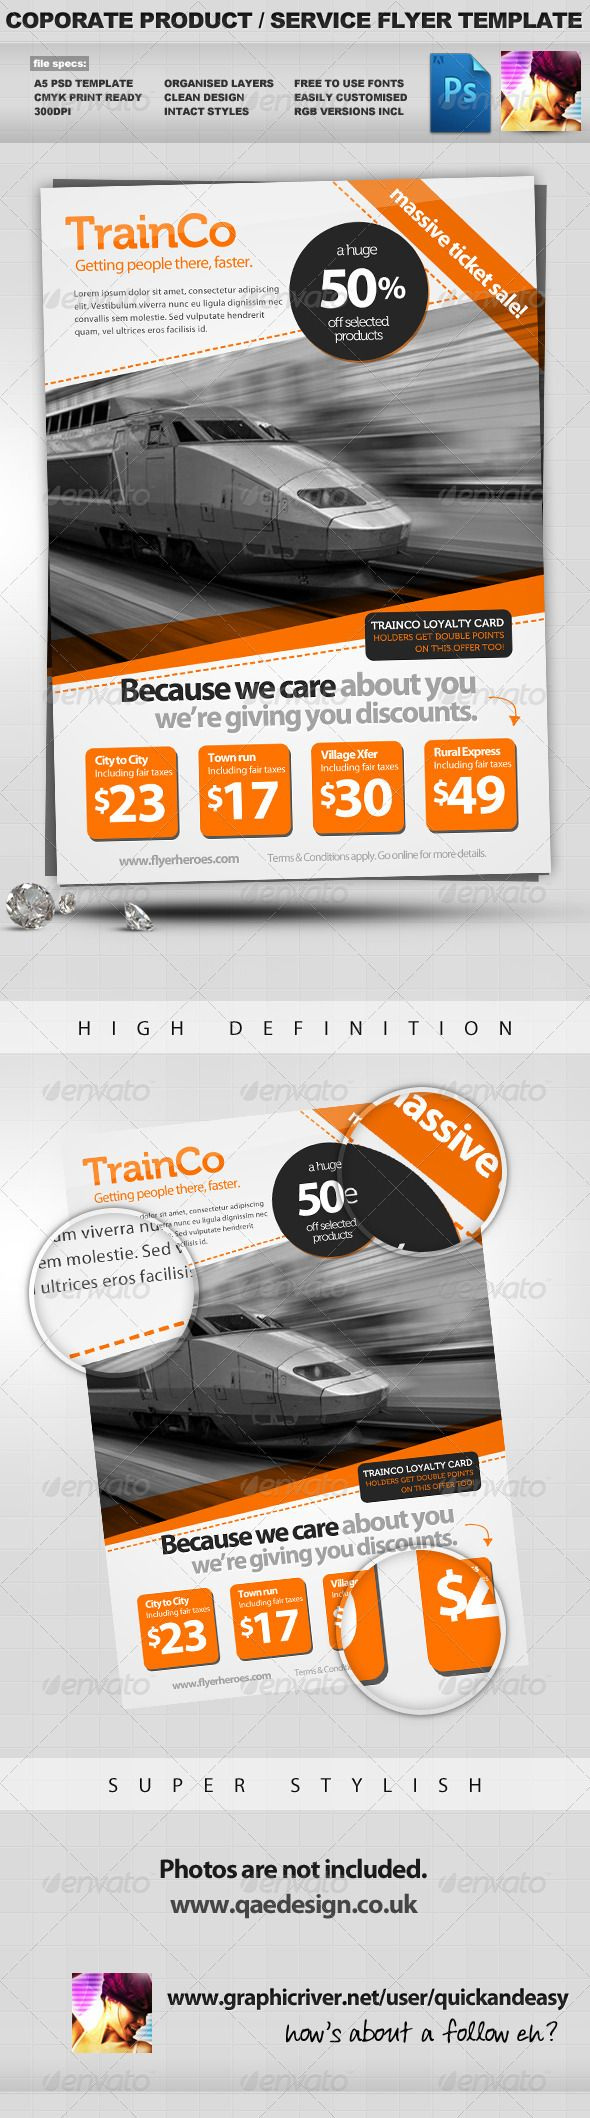 best images about graphics print psd flyer corporate product service psd flyer template